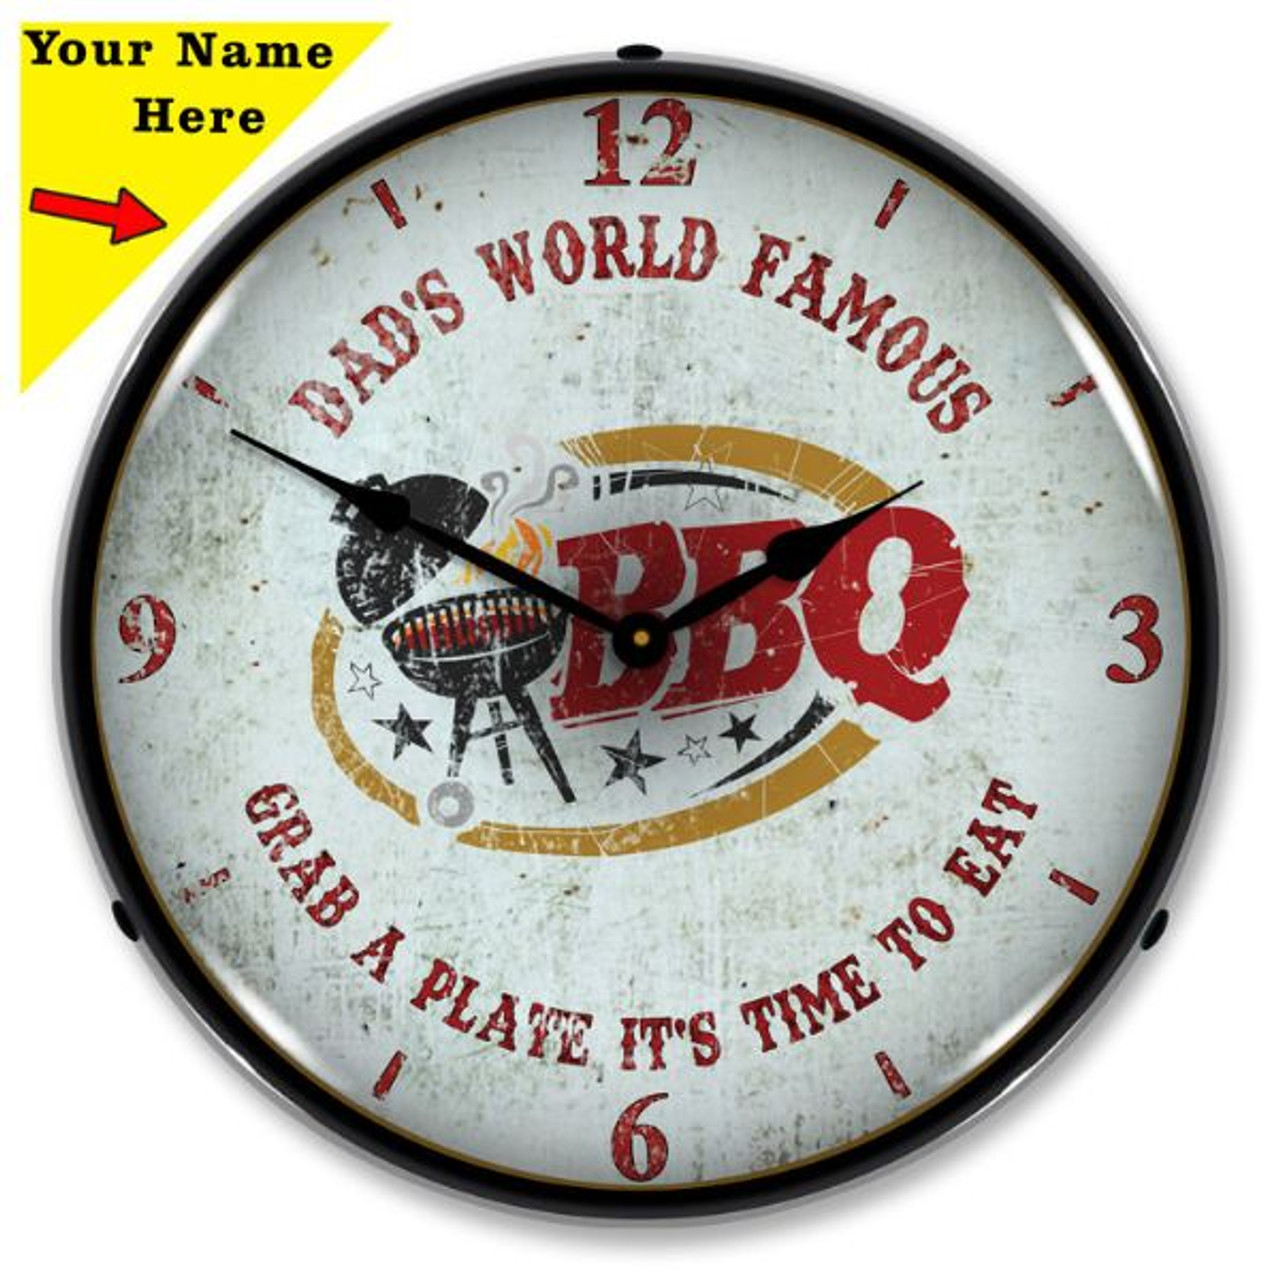 Personalized Dads BBQ LED Lighted Wall Clock 14 x 14 Inches (Add Your Name)